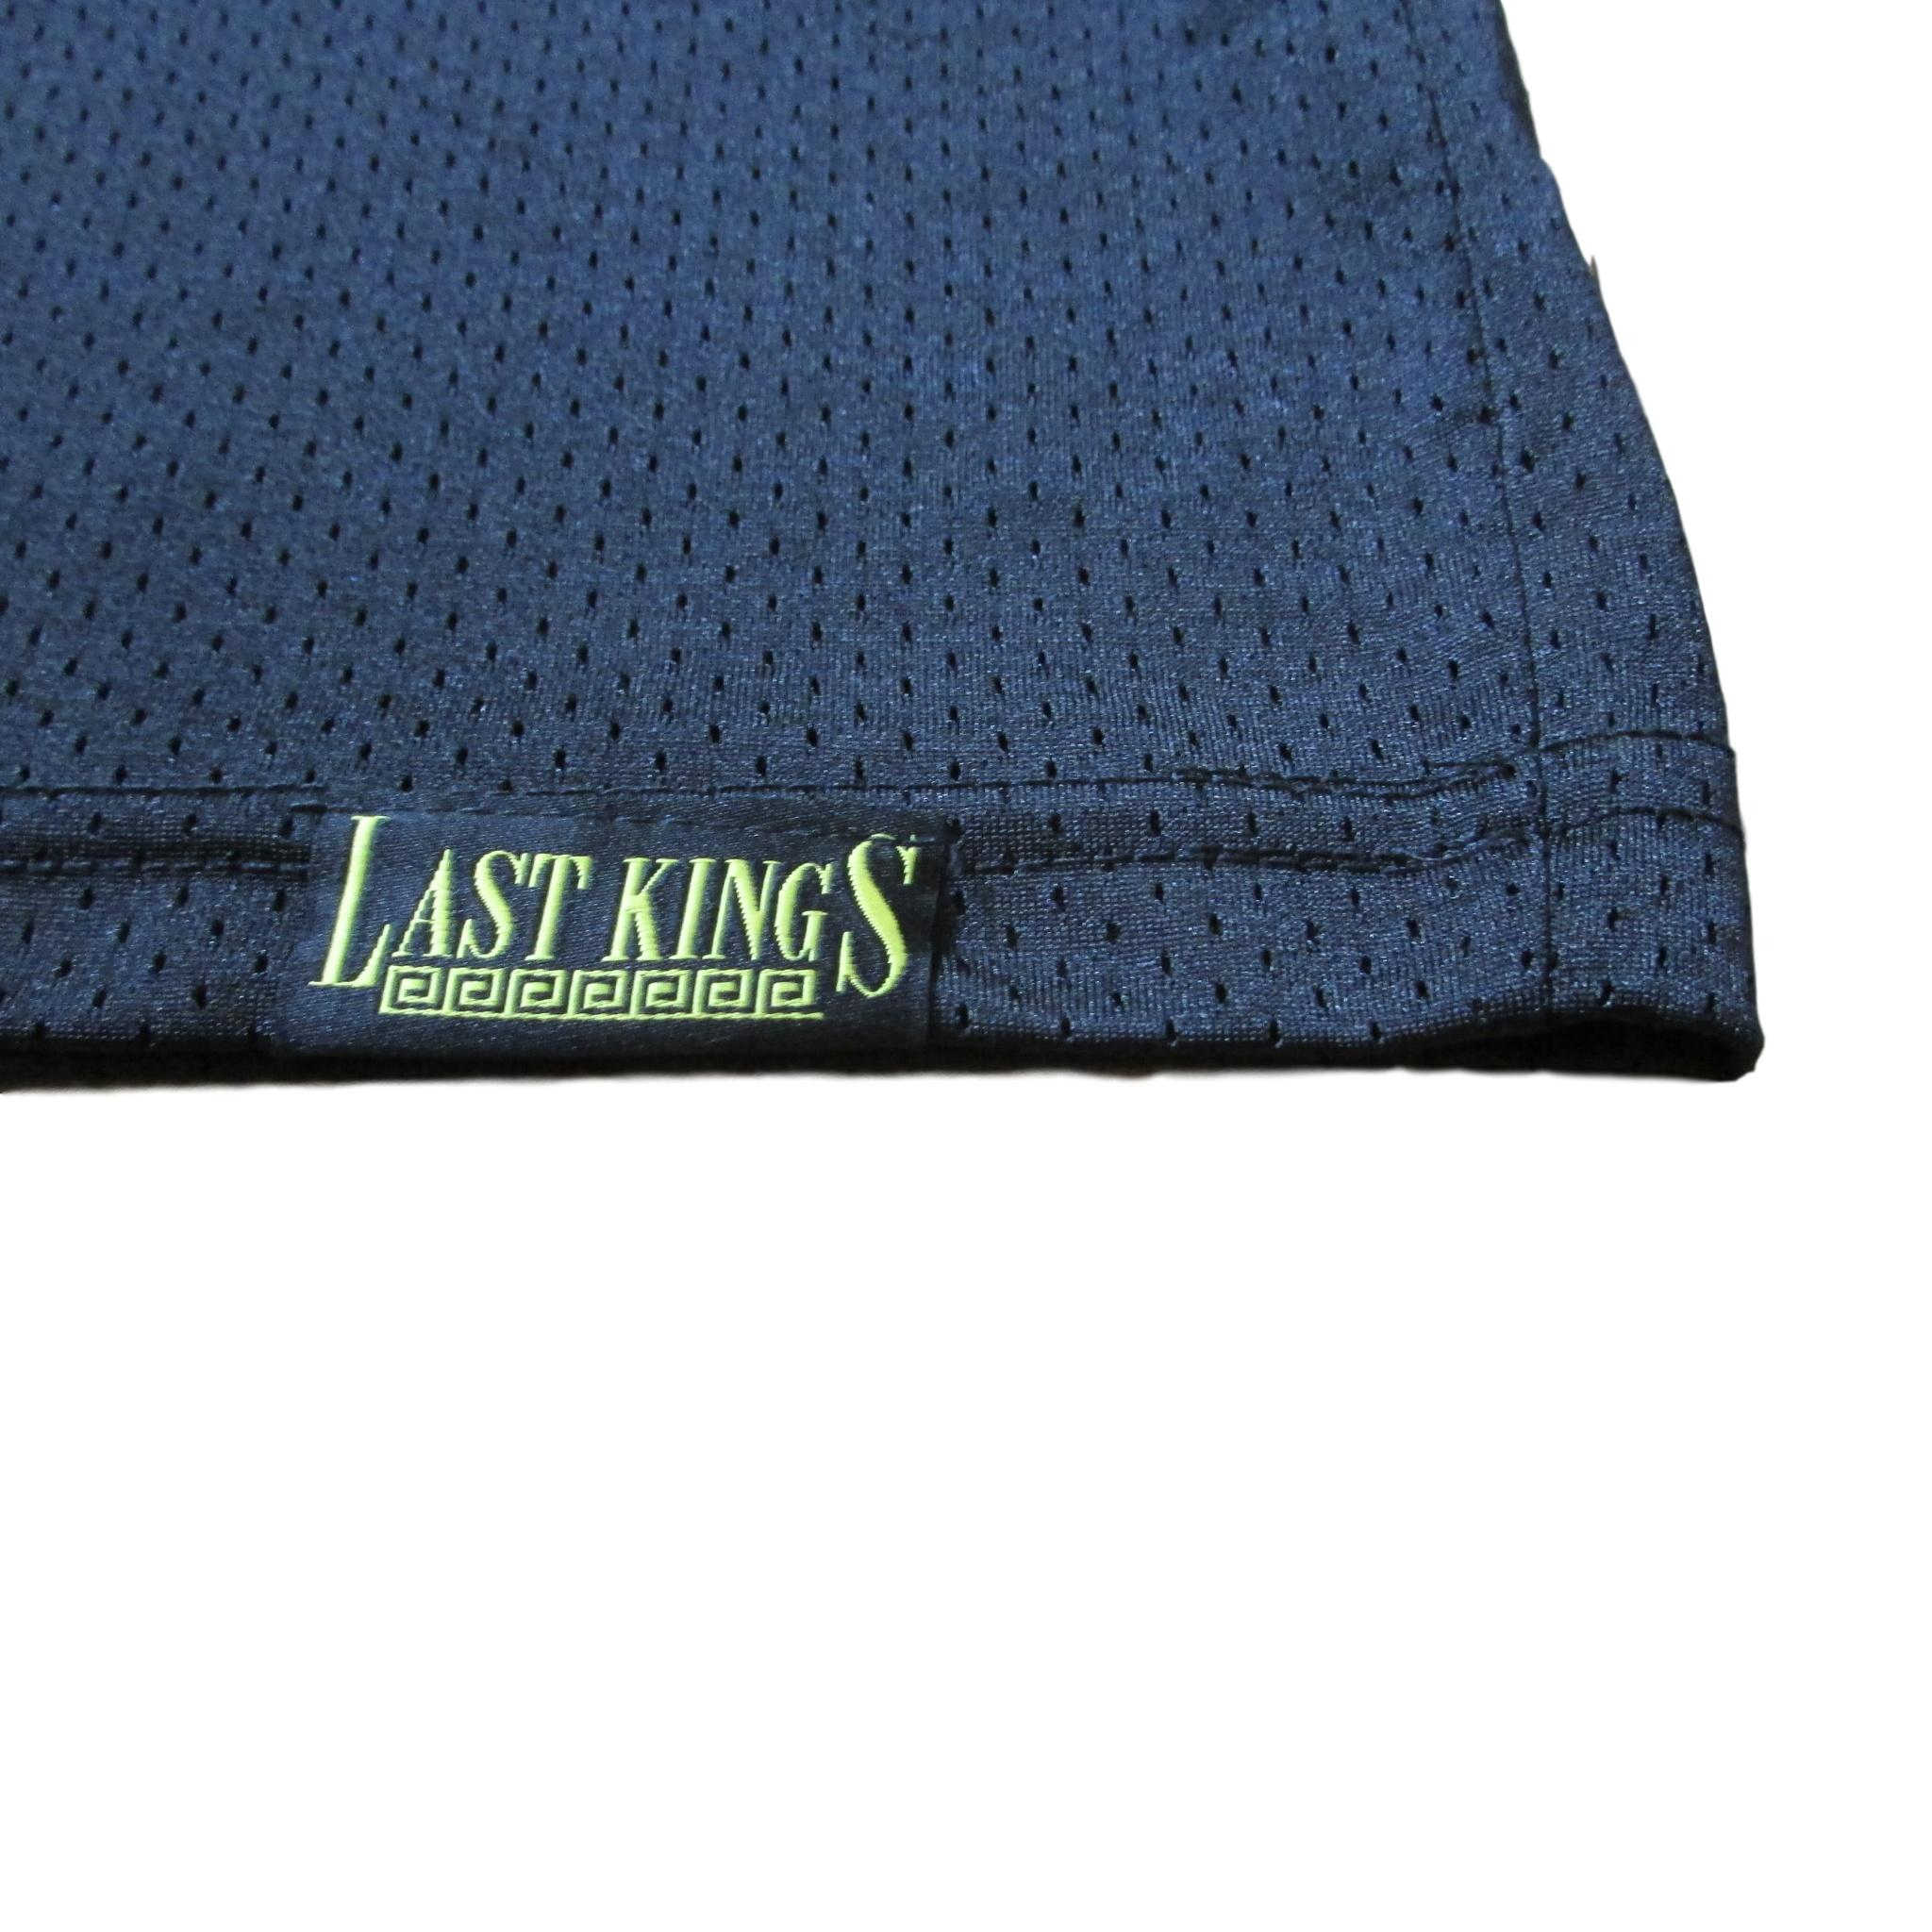 Last Kings Mesh Jersey Basketball Tank Top Shirt